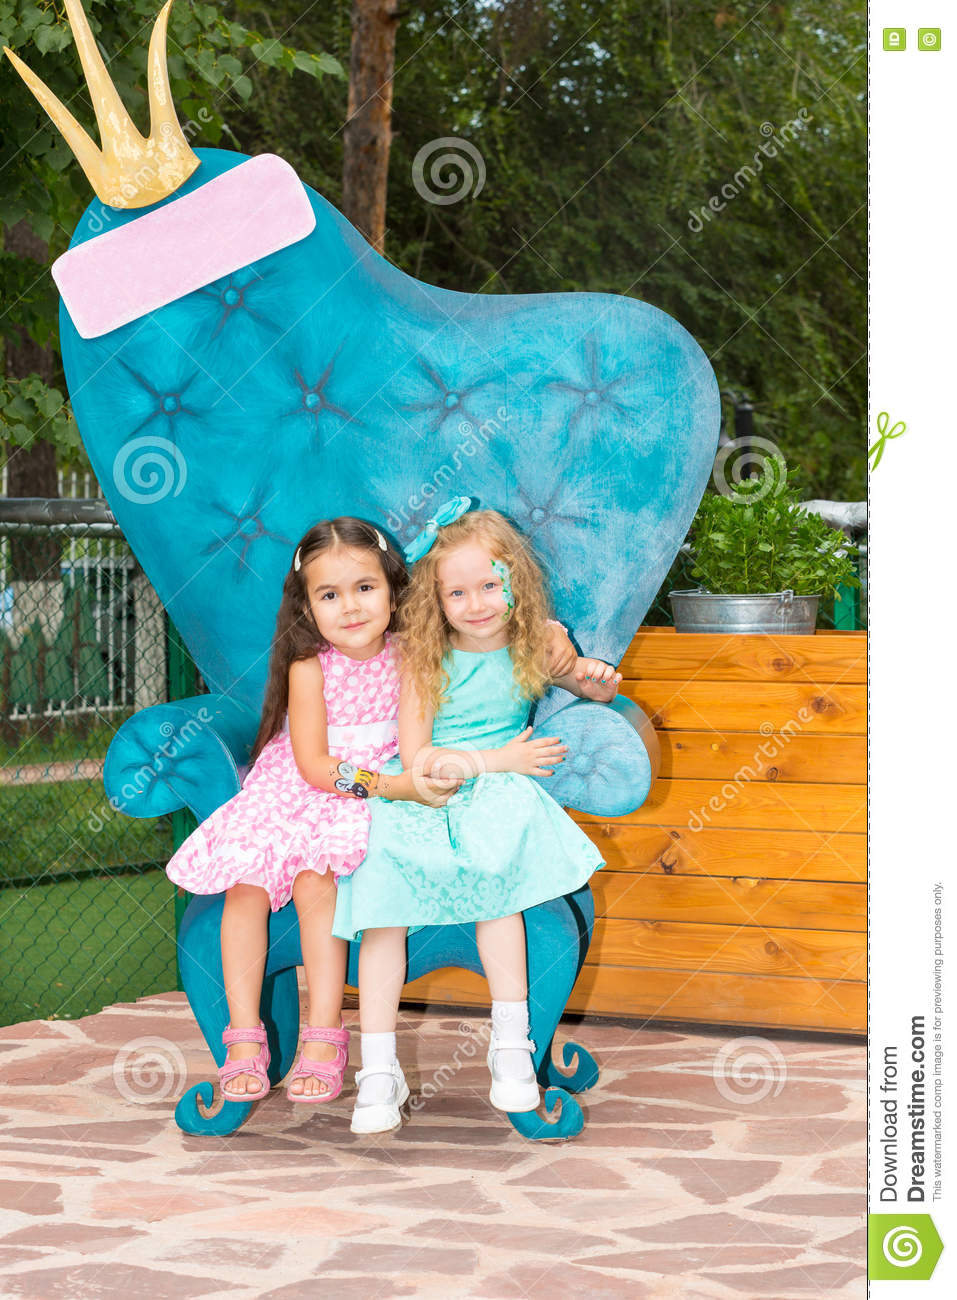 Two girlfriends. Adorable little children on happy birthday. Kid in park